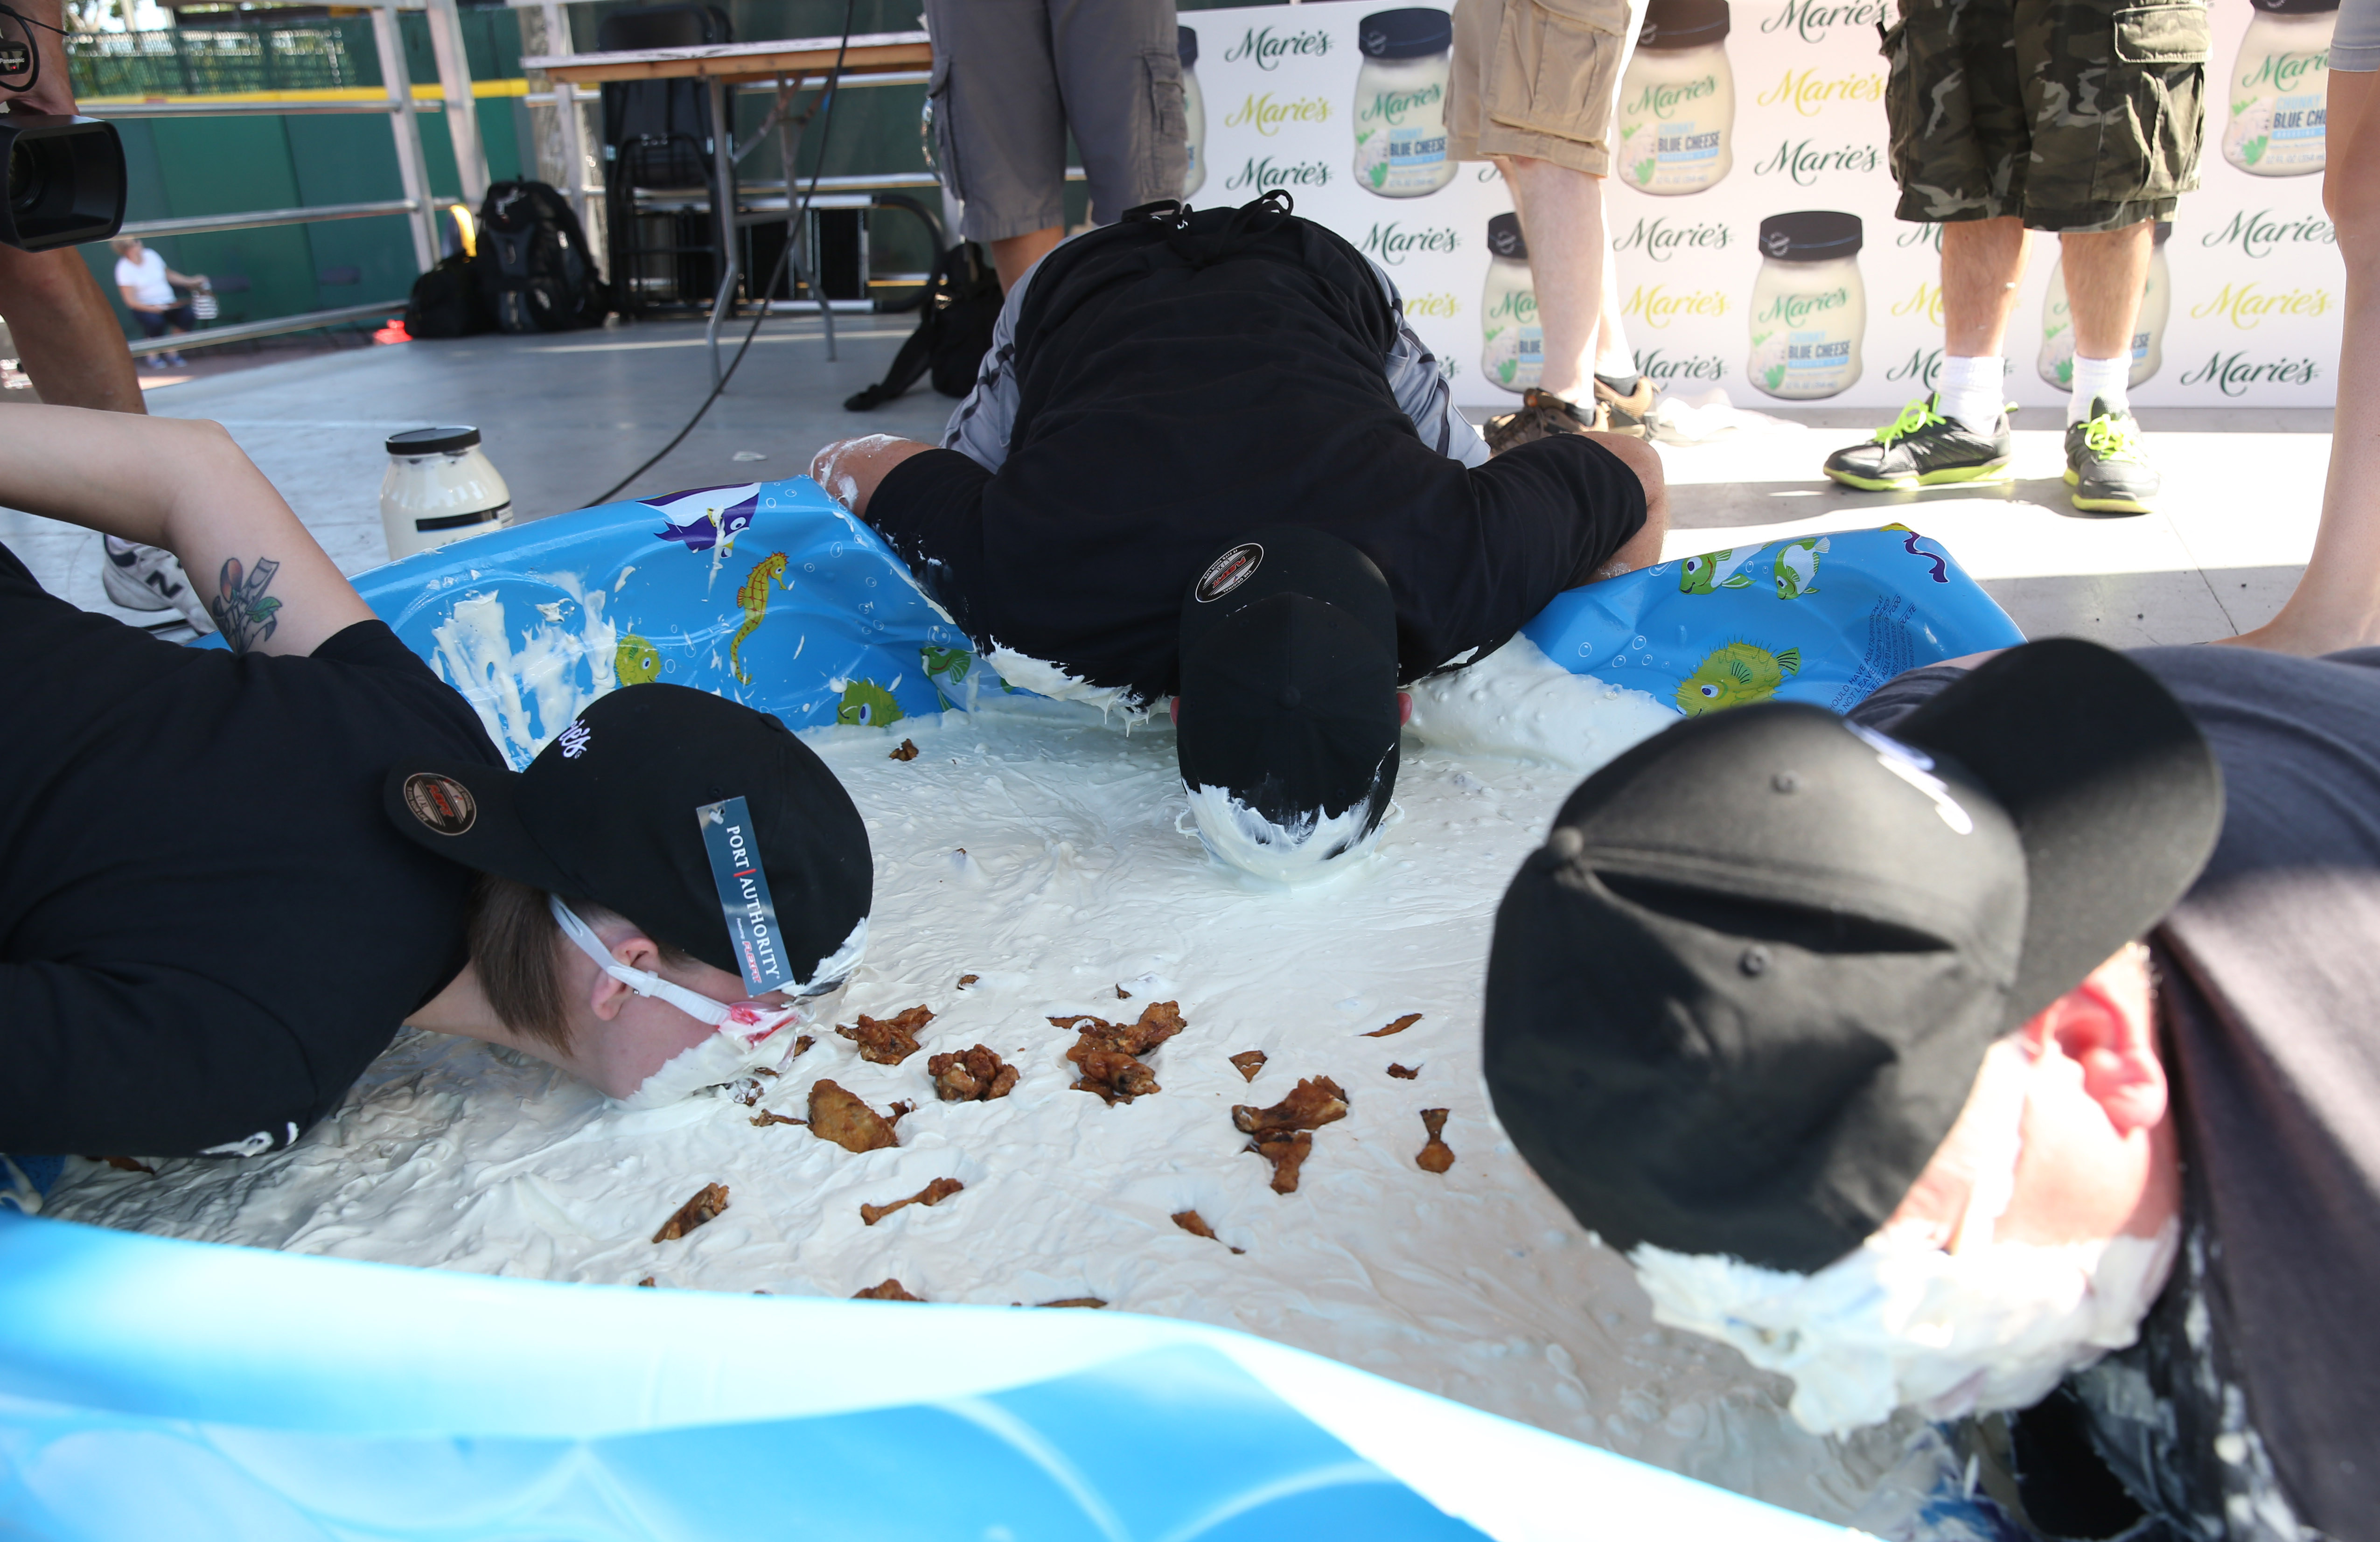 The 15th Annual National Buffalo Wing Festival kicks off, Saturday, Sept. 3, 2016. Three contestants participate in the bobbing for wings contest. With goggles on they pull wings pulled out of a kids pool filled with blue cheese dressing. (Sharon Cantillon/Buffalo News)